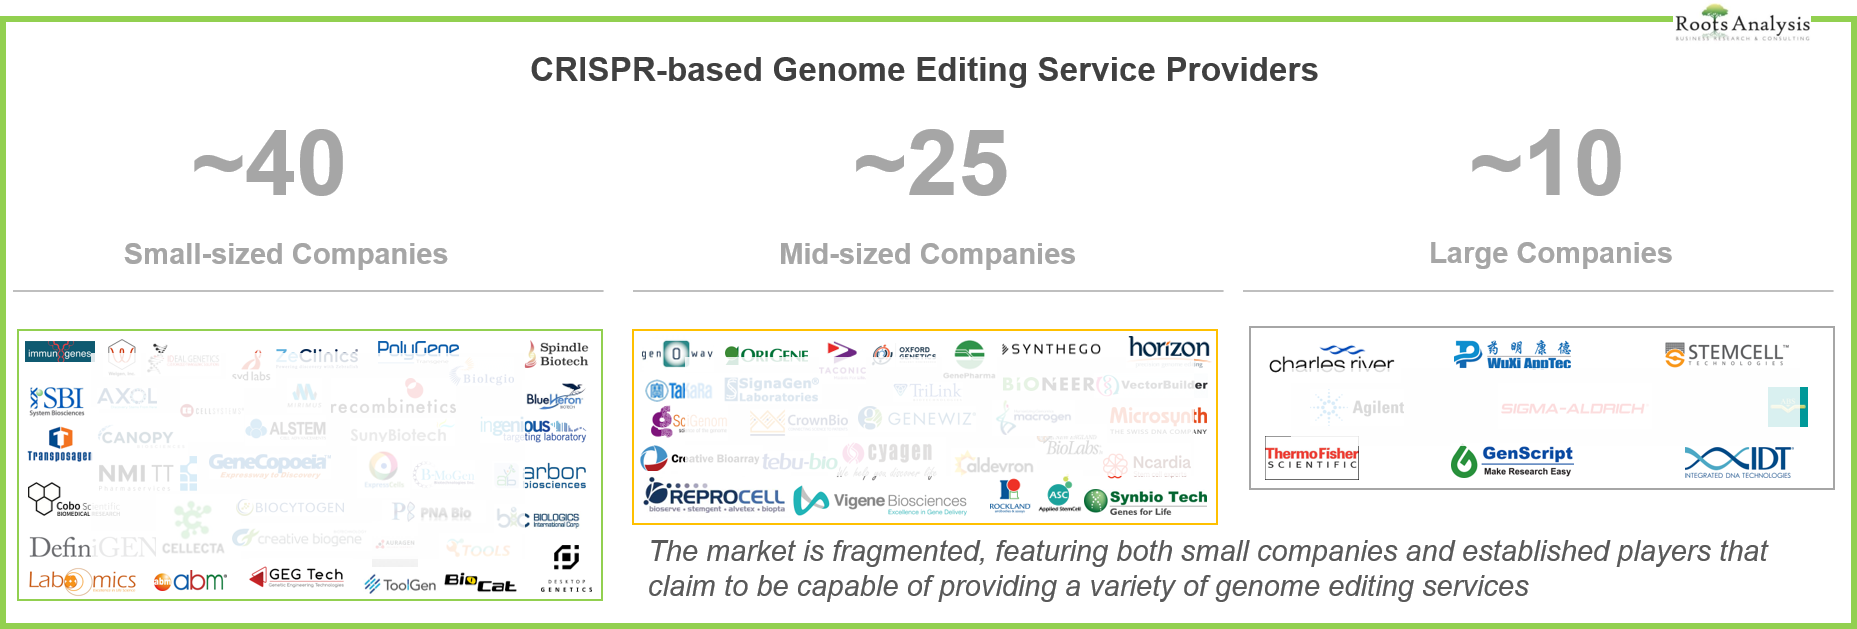 Infographic: Genome Editing Services Market Players (CRISPR)